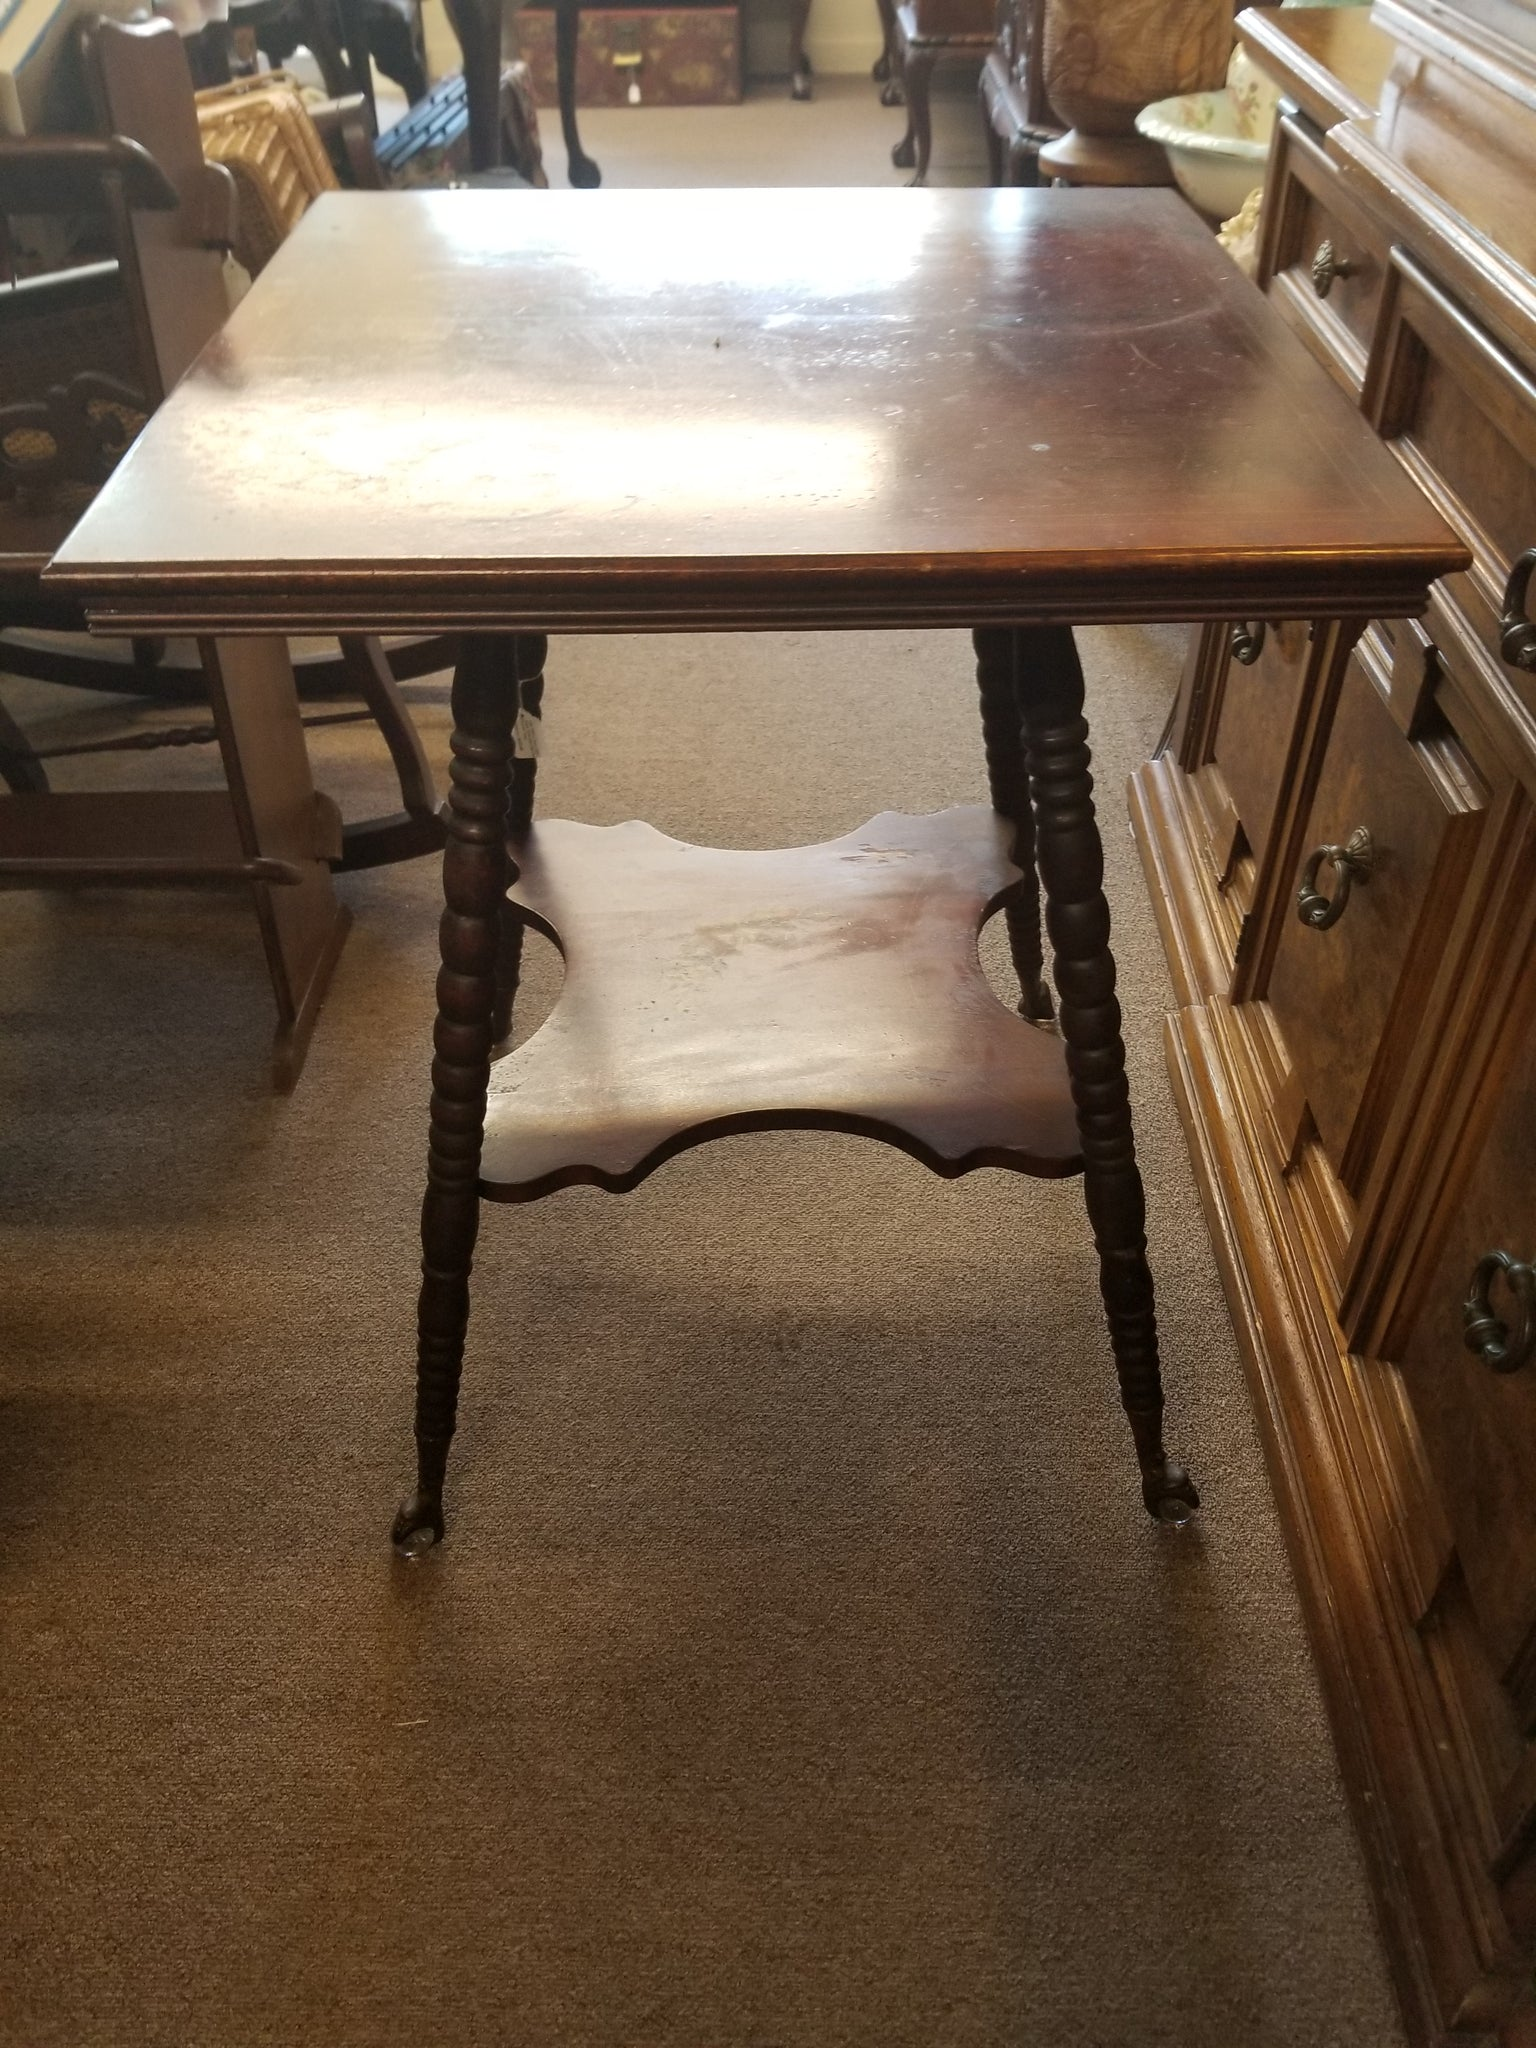 LATE 1800's EARLY 1900's EAGLE CLAW GLASS BALL FEET SQUARE TABLE